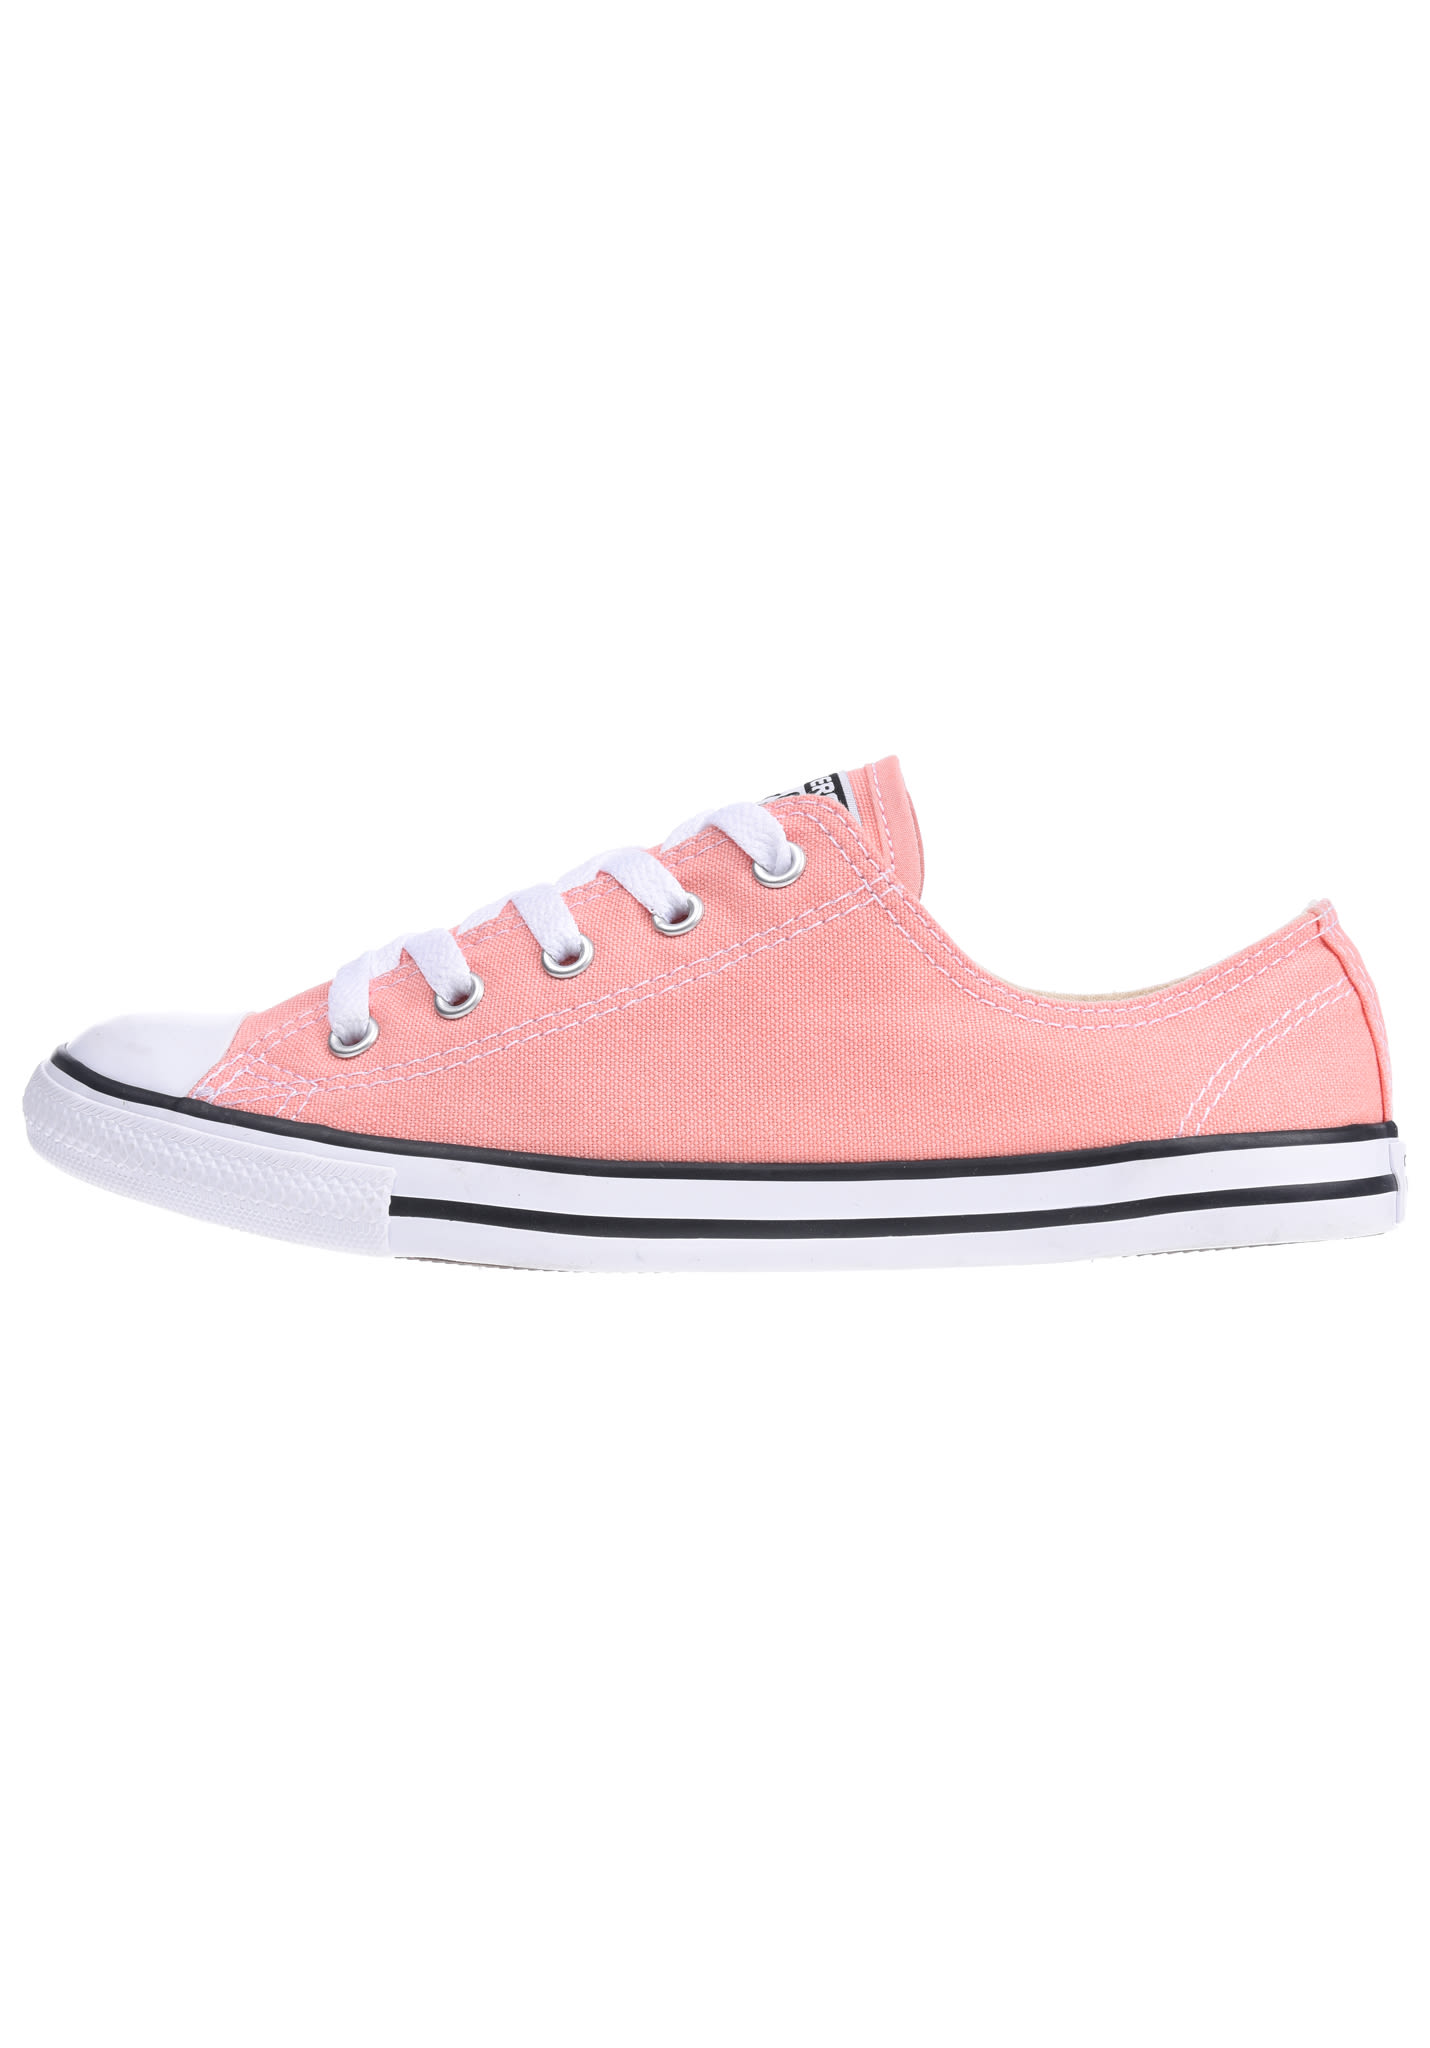 167eacd02ba16 Converse Chuck Taylor All Star Dainty OX - Sneakers for Women - Pink -  Planet Sports